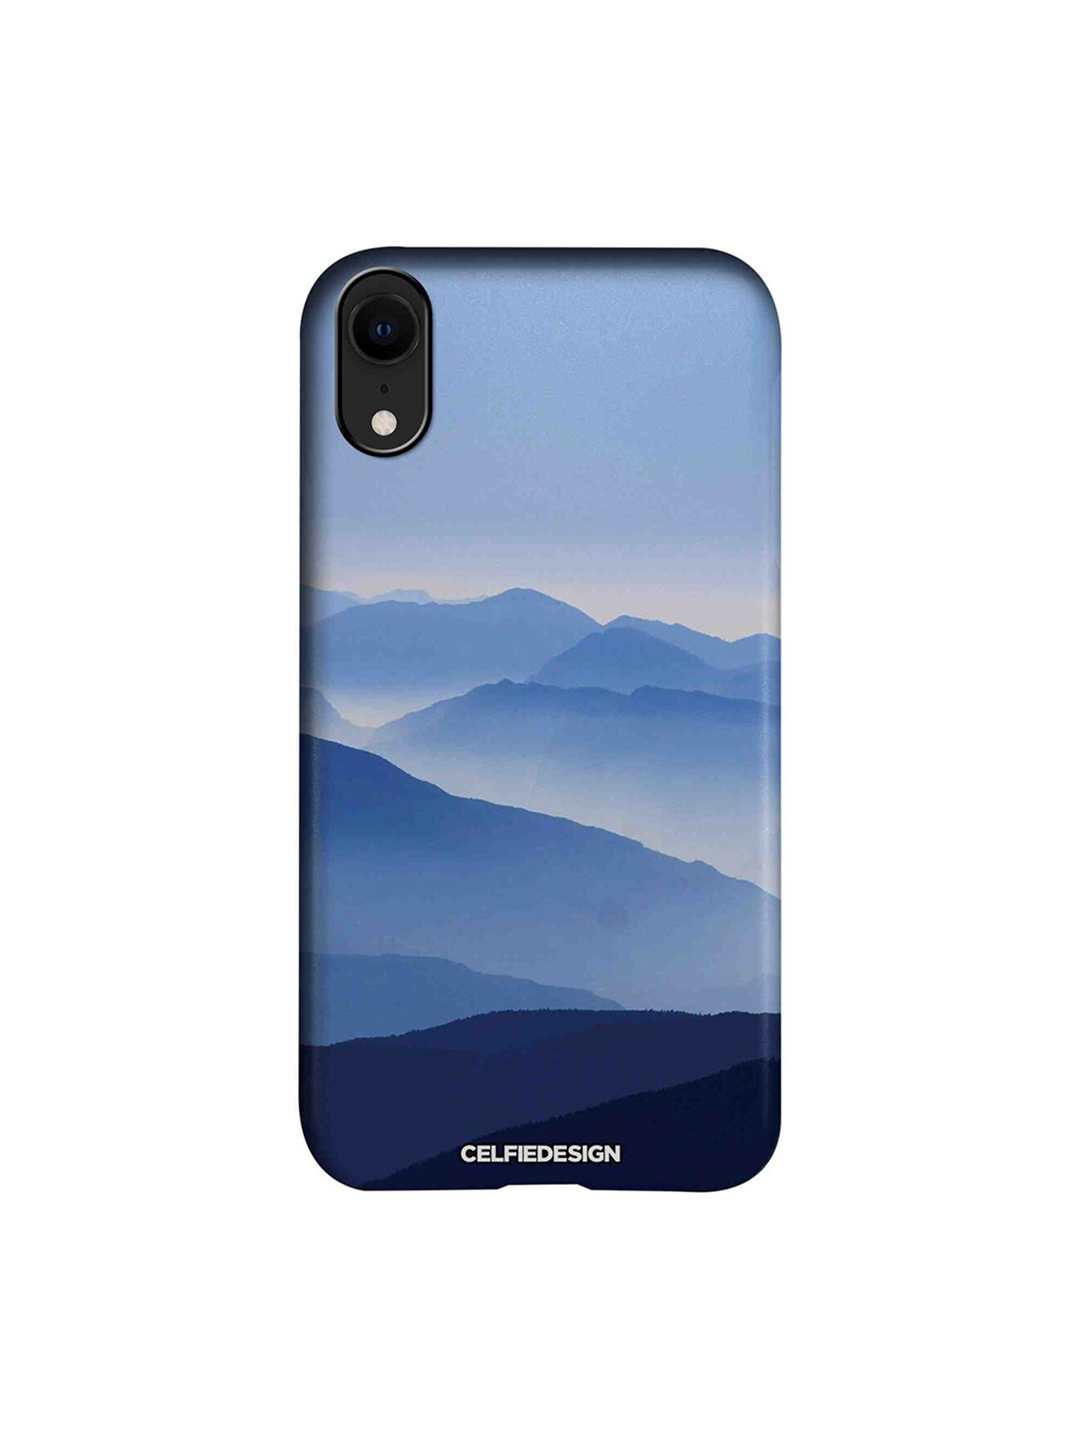 The High Mountains Apple iPhone XR Back Cover Signature